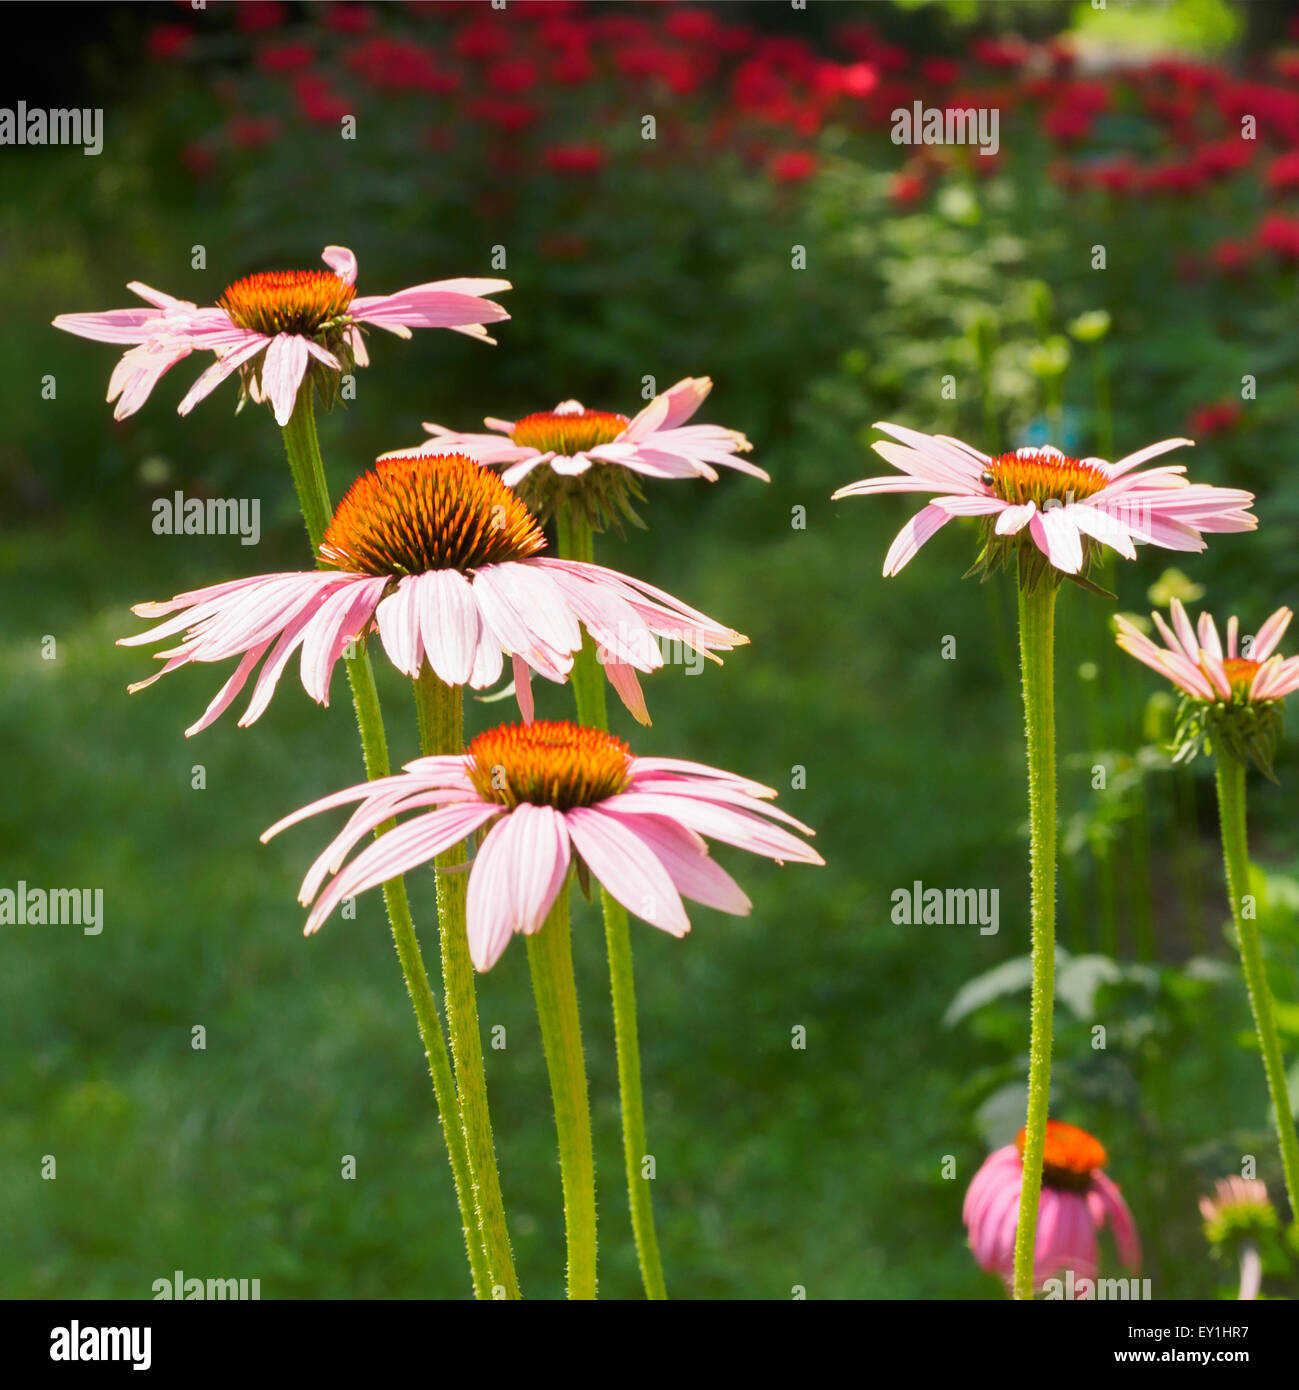 coneflowers-echinacea-on-a-summer-day-in-an-ohio-garden-square-format-EY1HR7.jpg